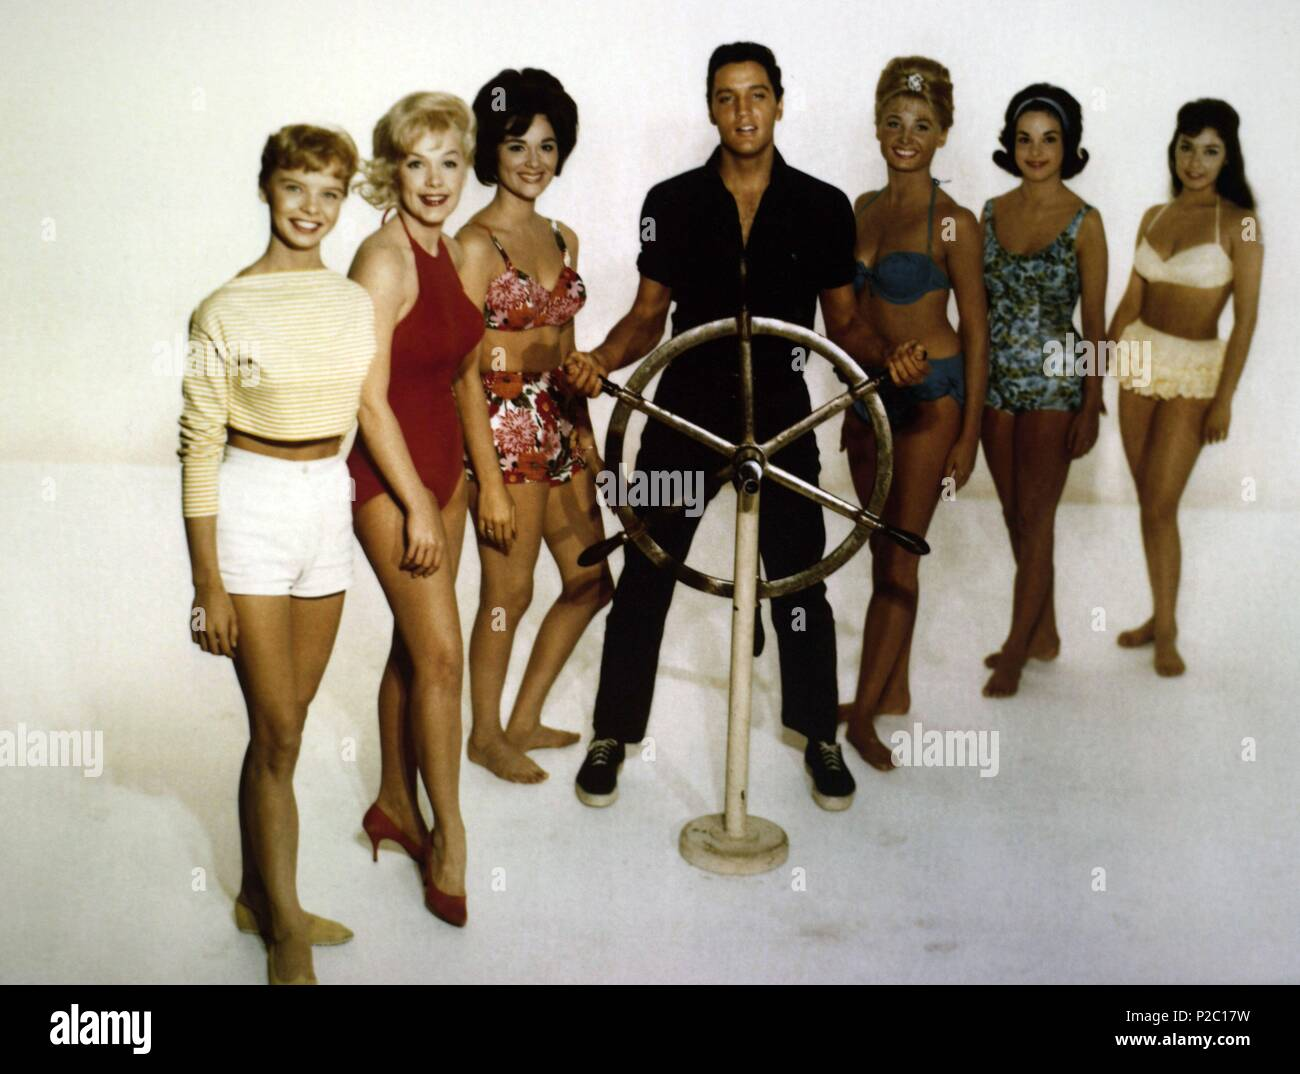 "1962 ELVIS PRESLEY in the Movies Photo /""GIRLS GIRLS GIRLS/"" STUDIO POSE 003"